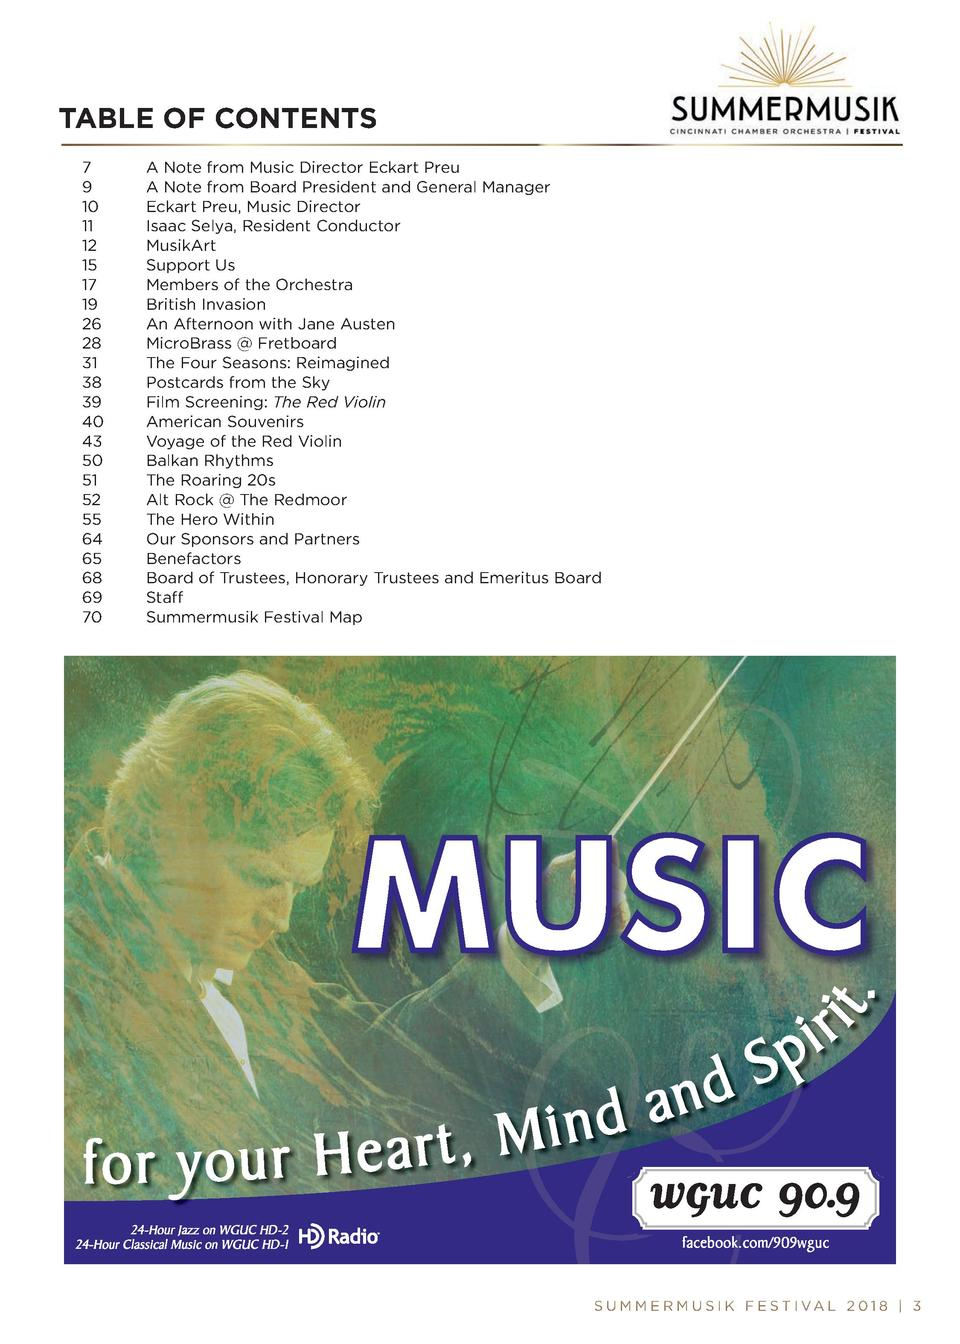 TABLE OF CONTENTS 7 9 10 11 12 15 17 19 26 28 31 38 39 40 43 50 51 52 55 64 65 68 69 70  A Note from Music Director Eckart...